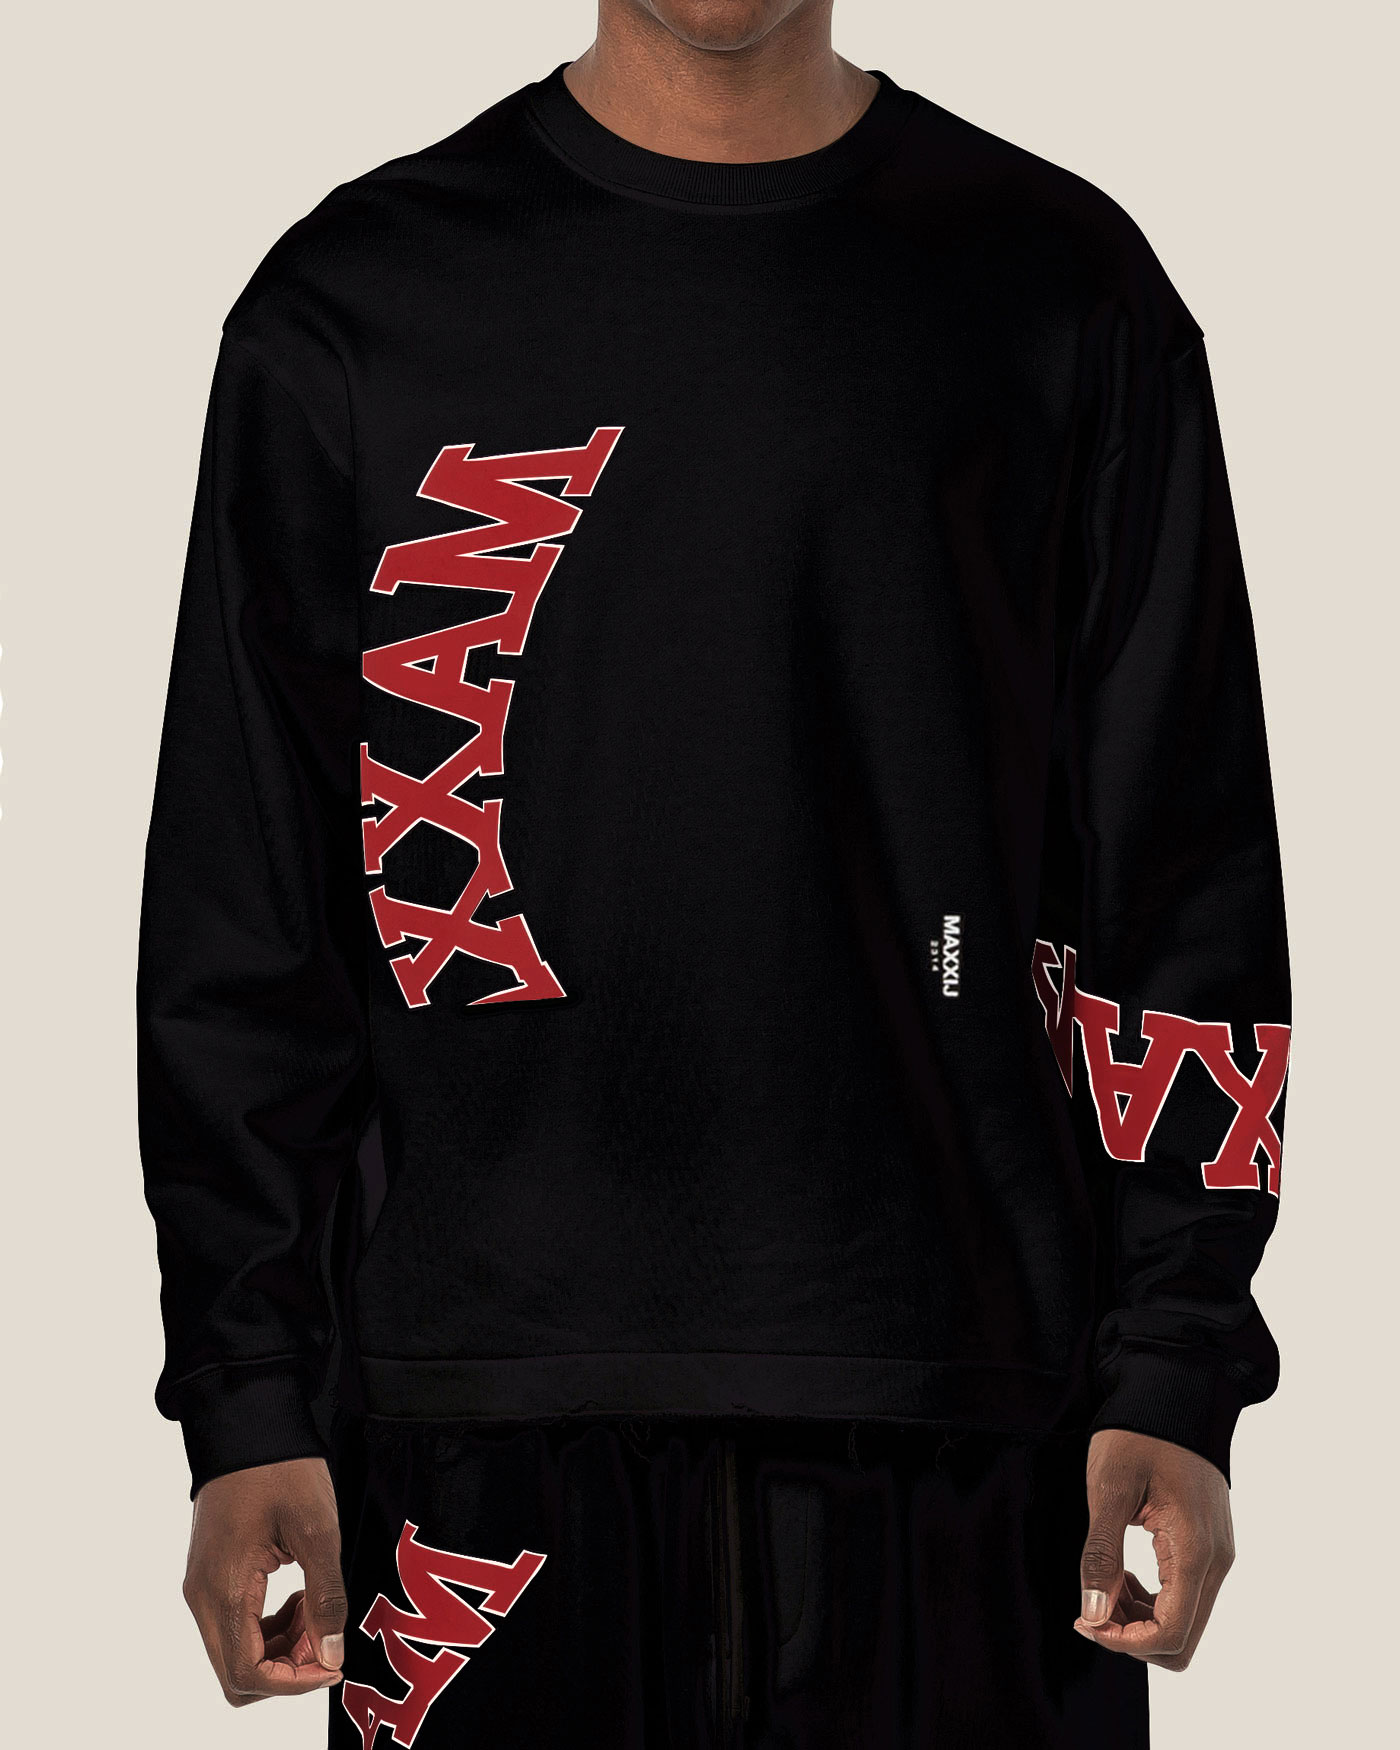 Collage Printed Sweatshirt Black